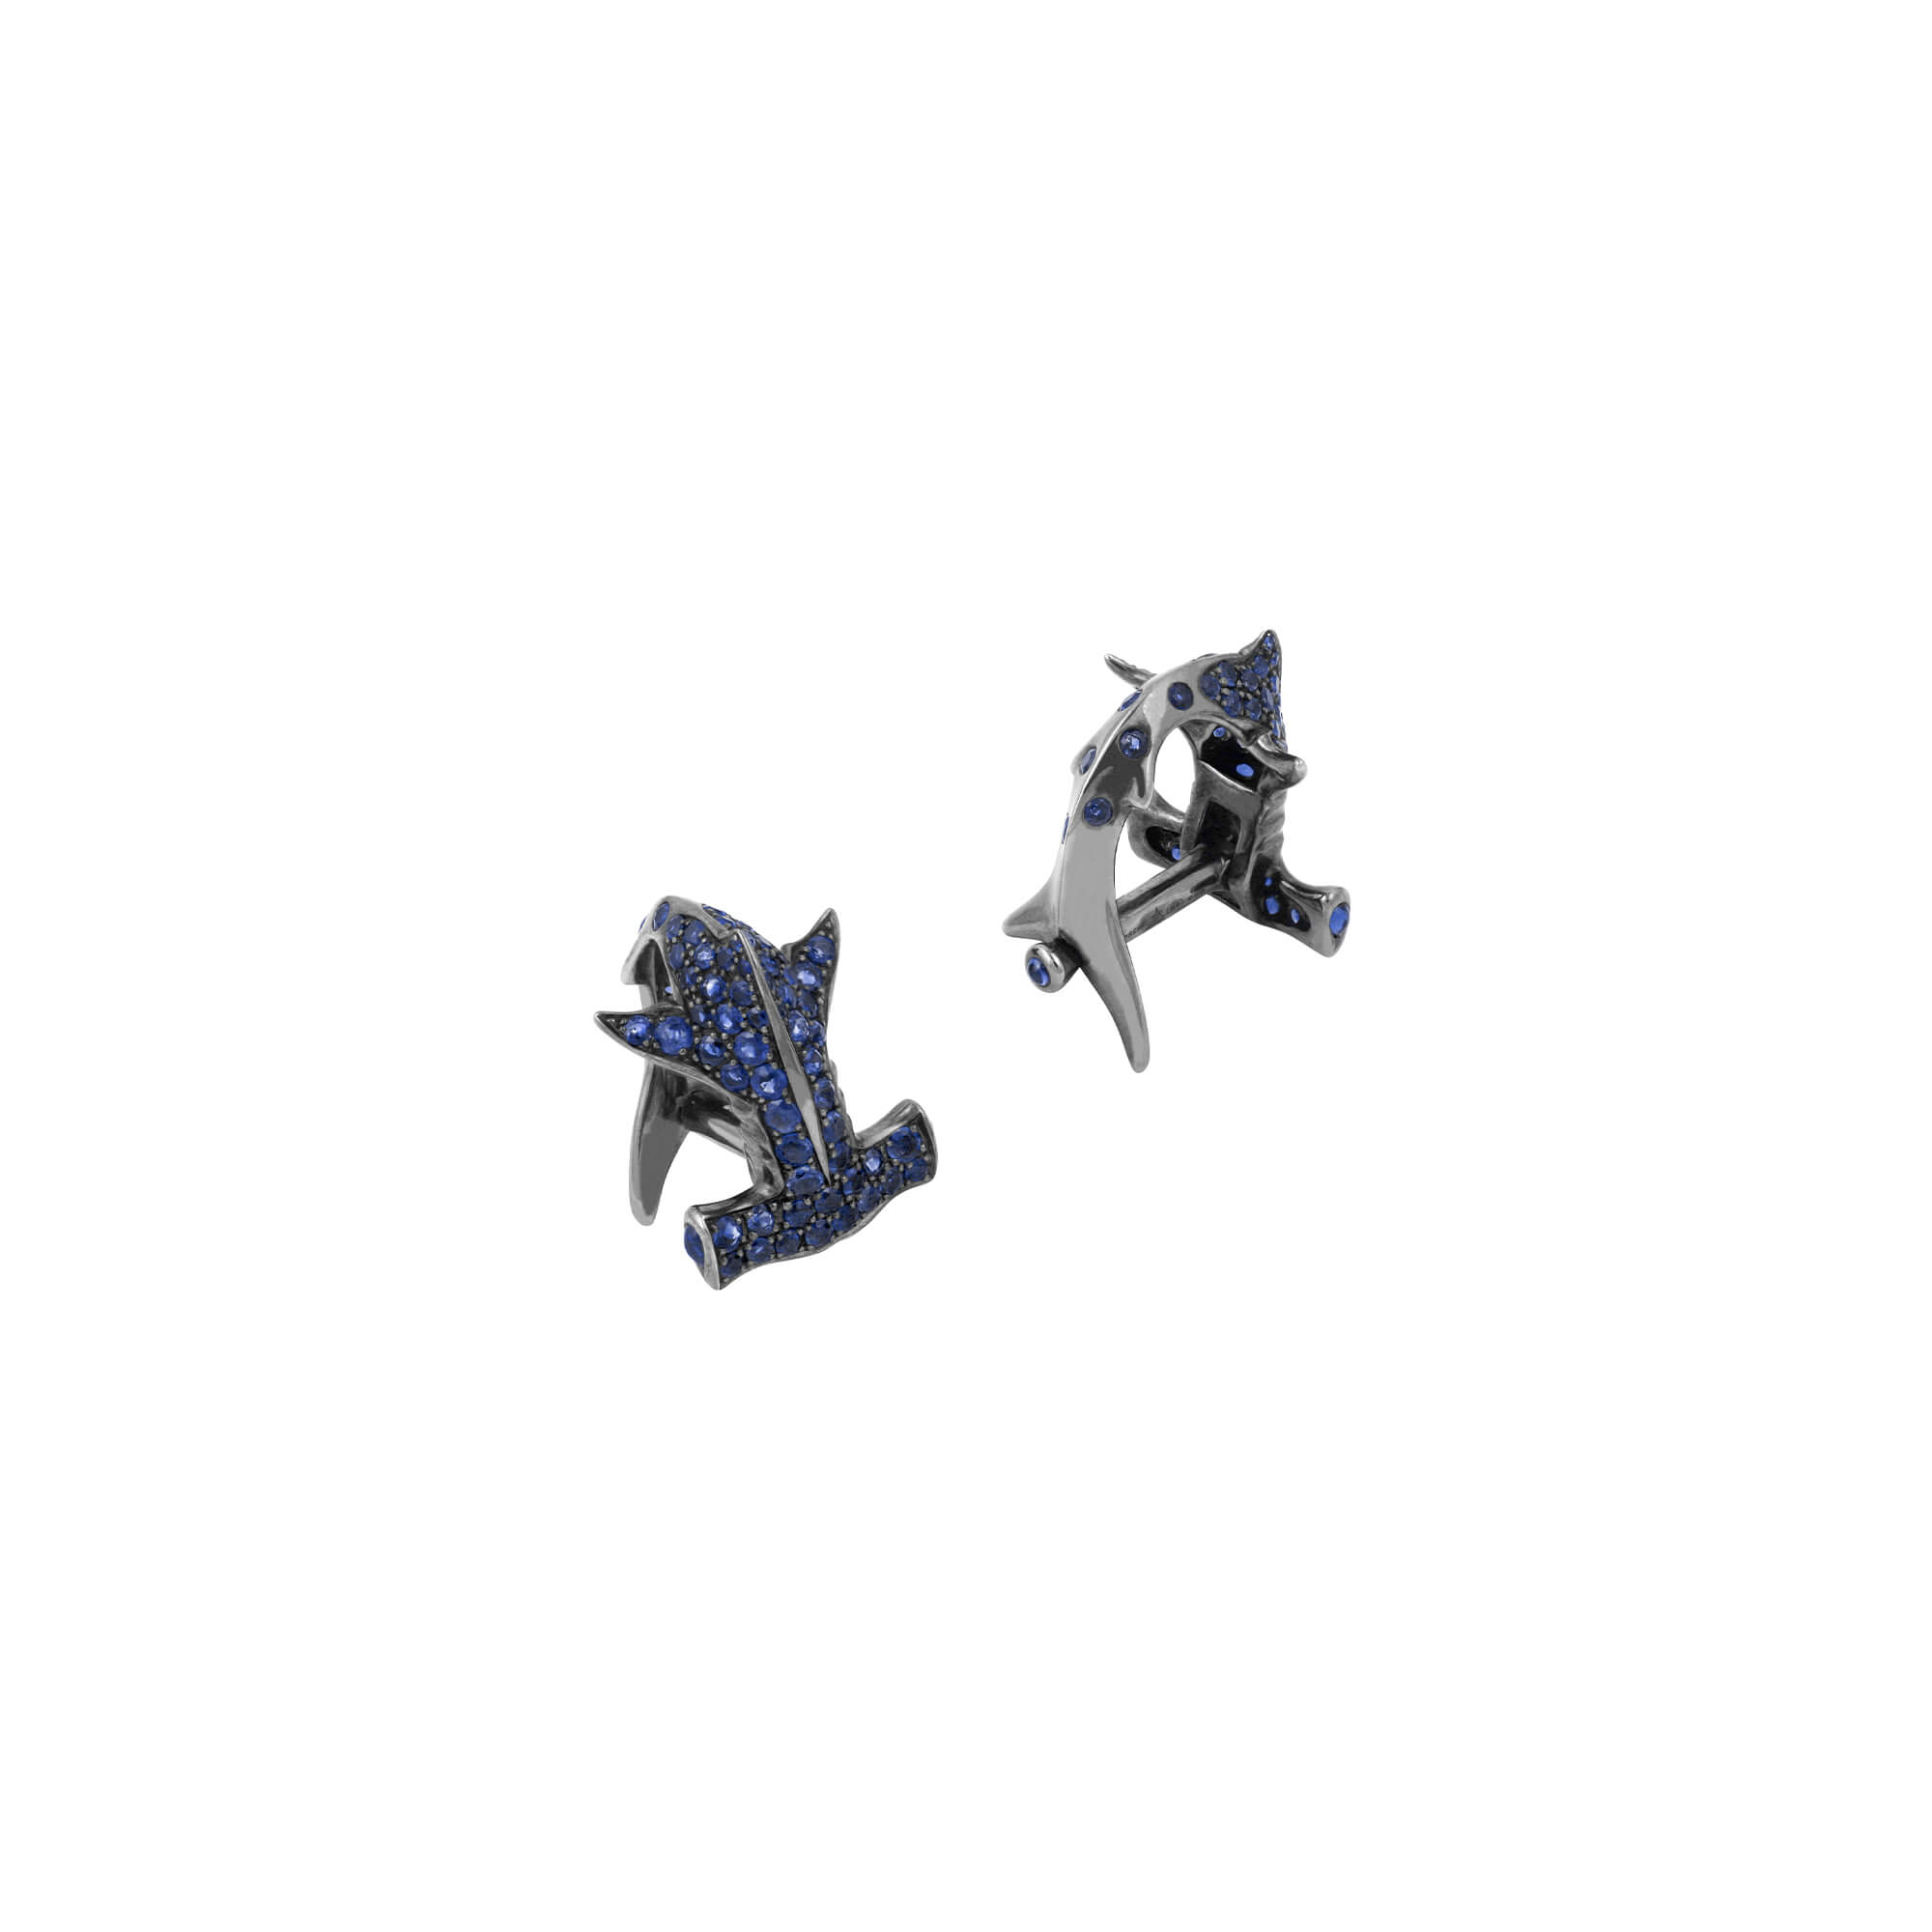 Men's Silver Hammerhead Cufflinks | Stephen Webster